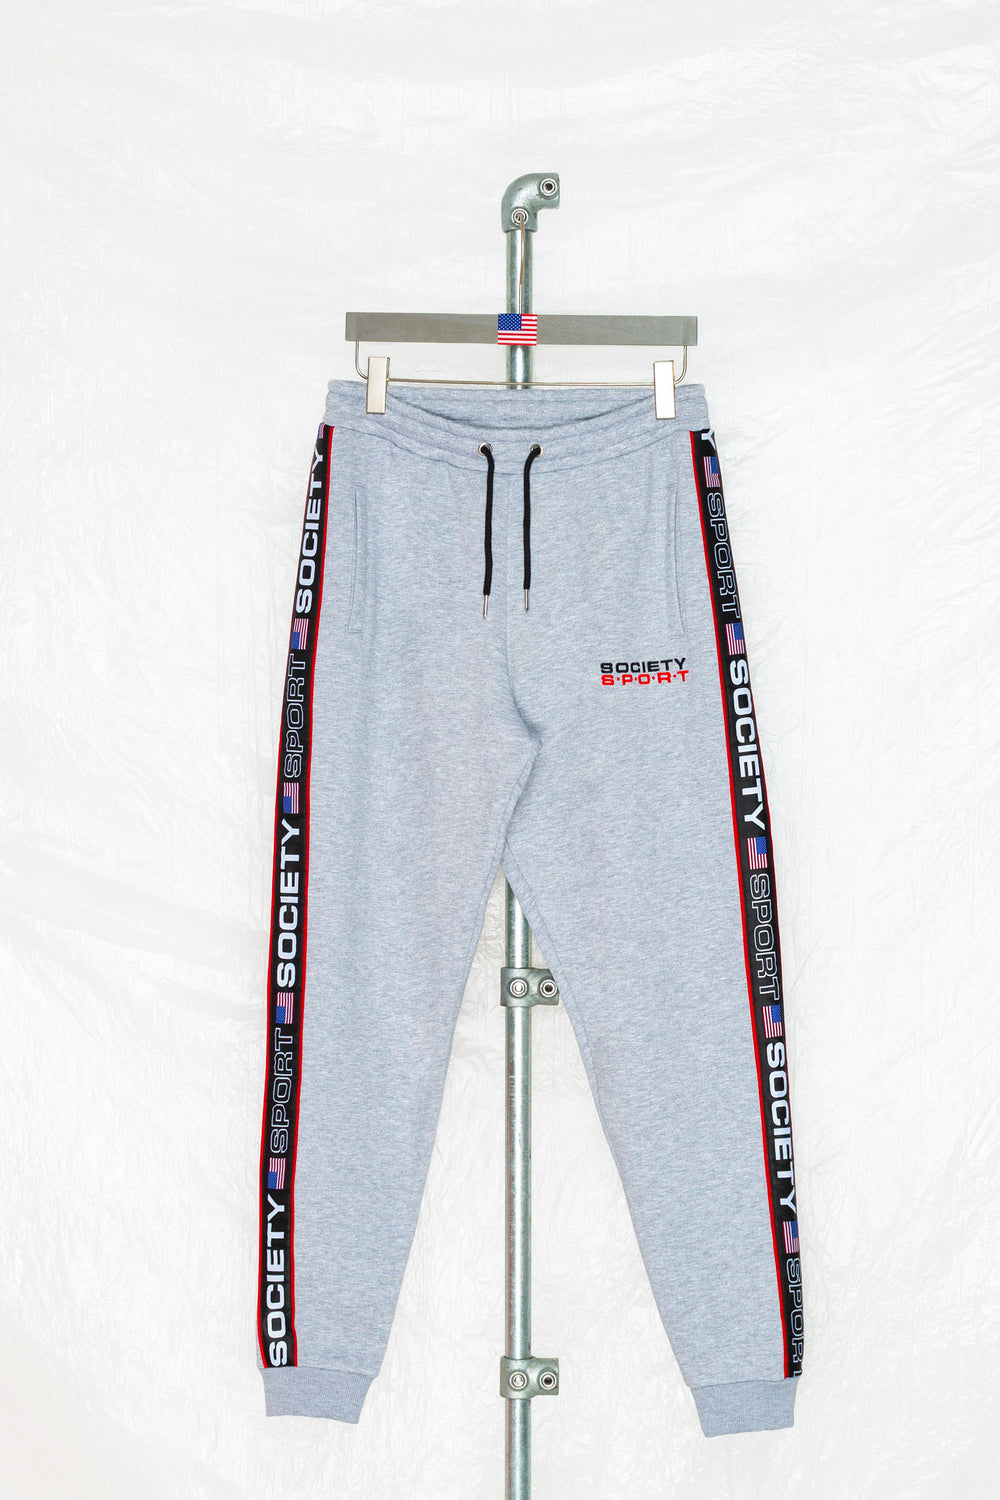 SOCIETY SPORT GREY TAPED JOGGER